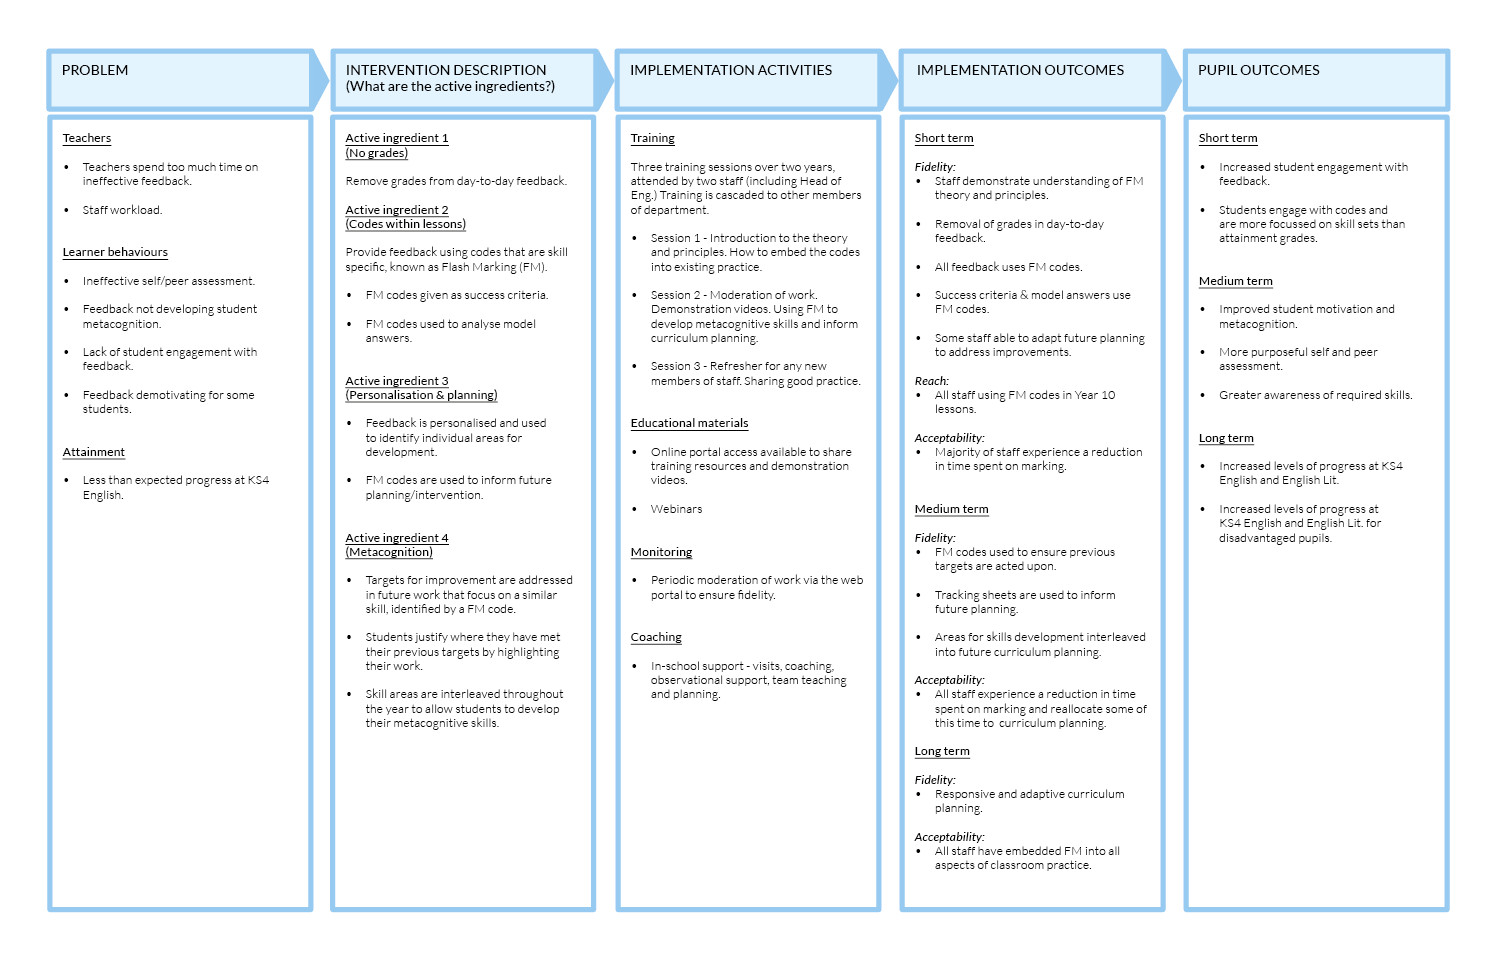 Mission Essential Contractor Services Plan Template Behaviour Guidance Plan Template Images Template Design